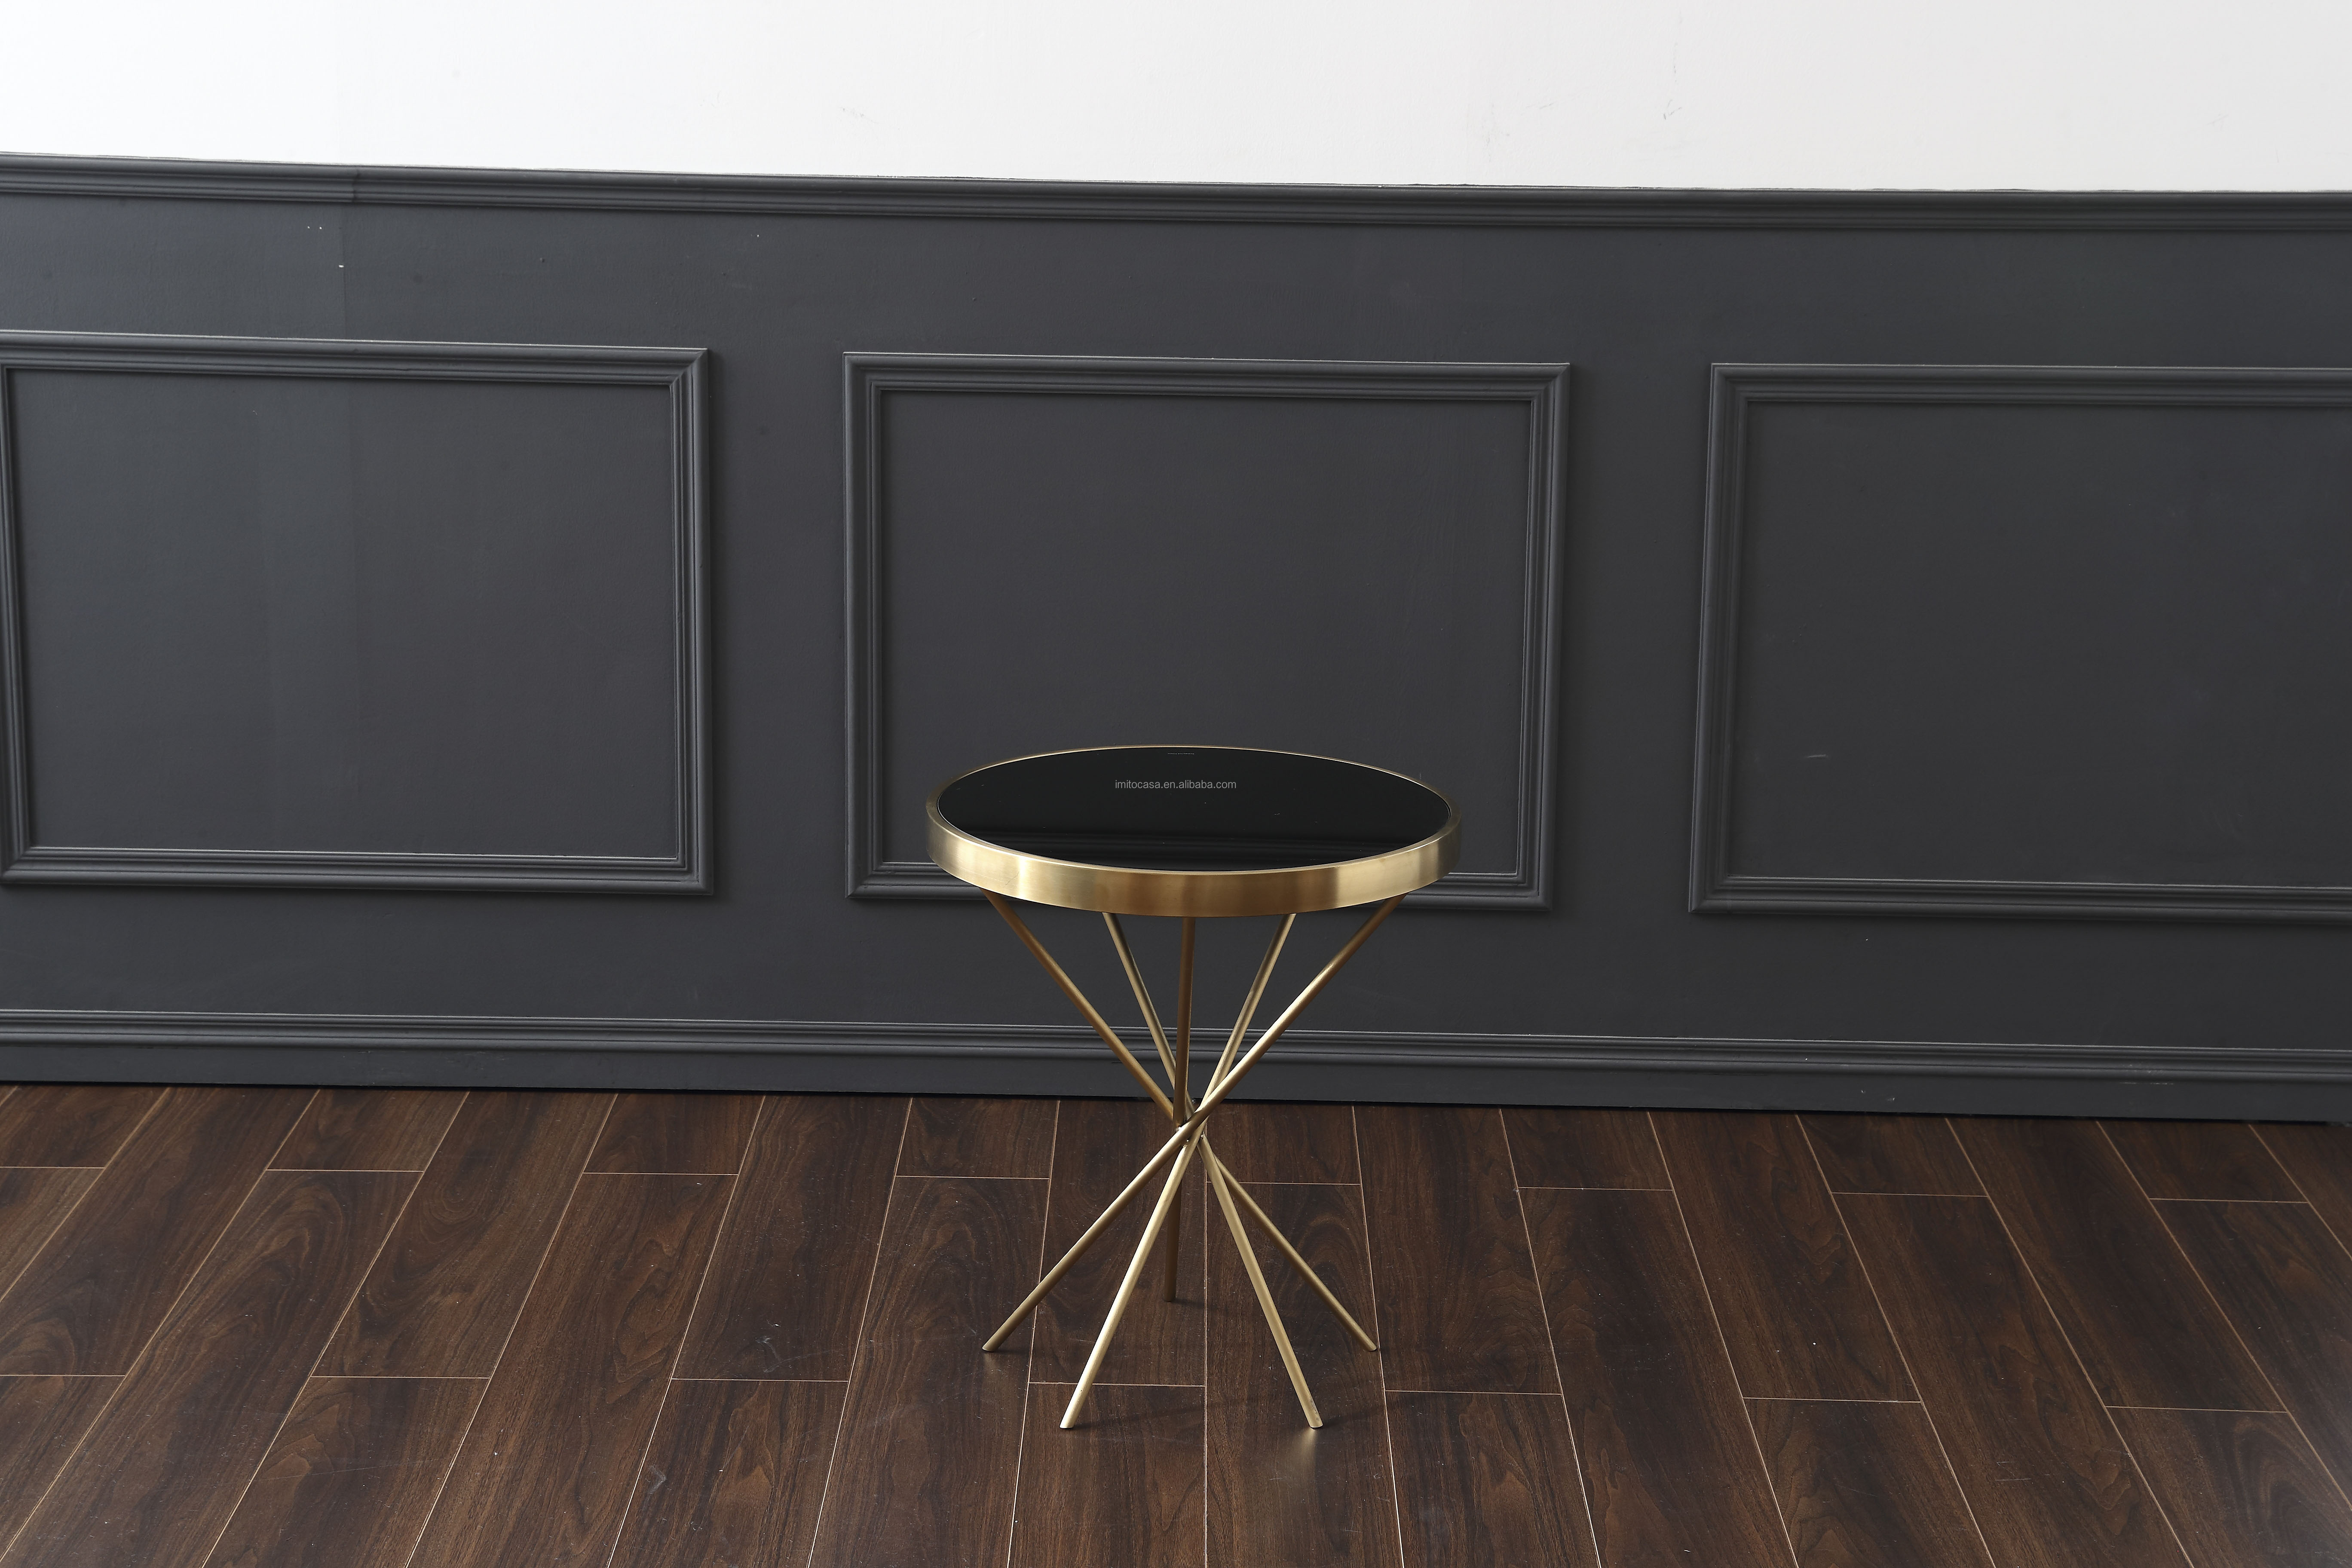 Italian New Design Living Room Furniture Stylish Stainless Steel Round Coffee Table Modern Golden Side Table With Black Top